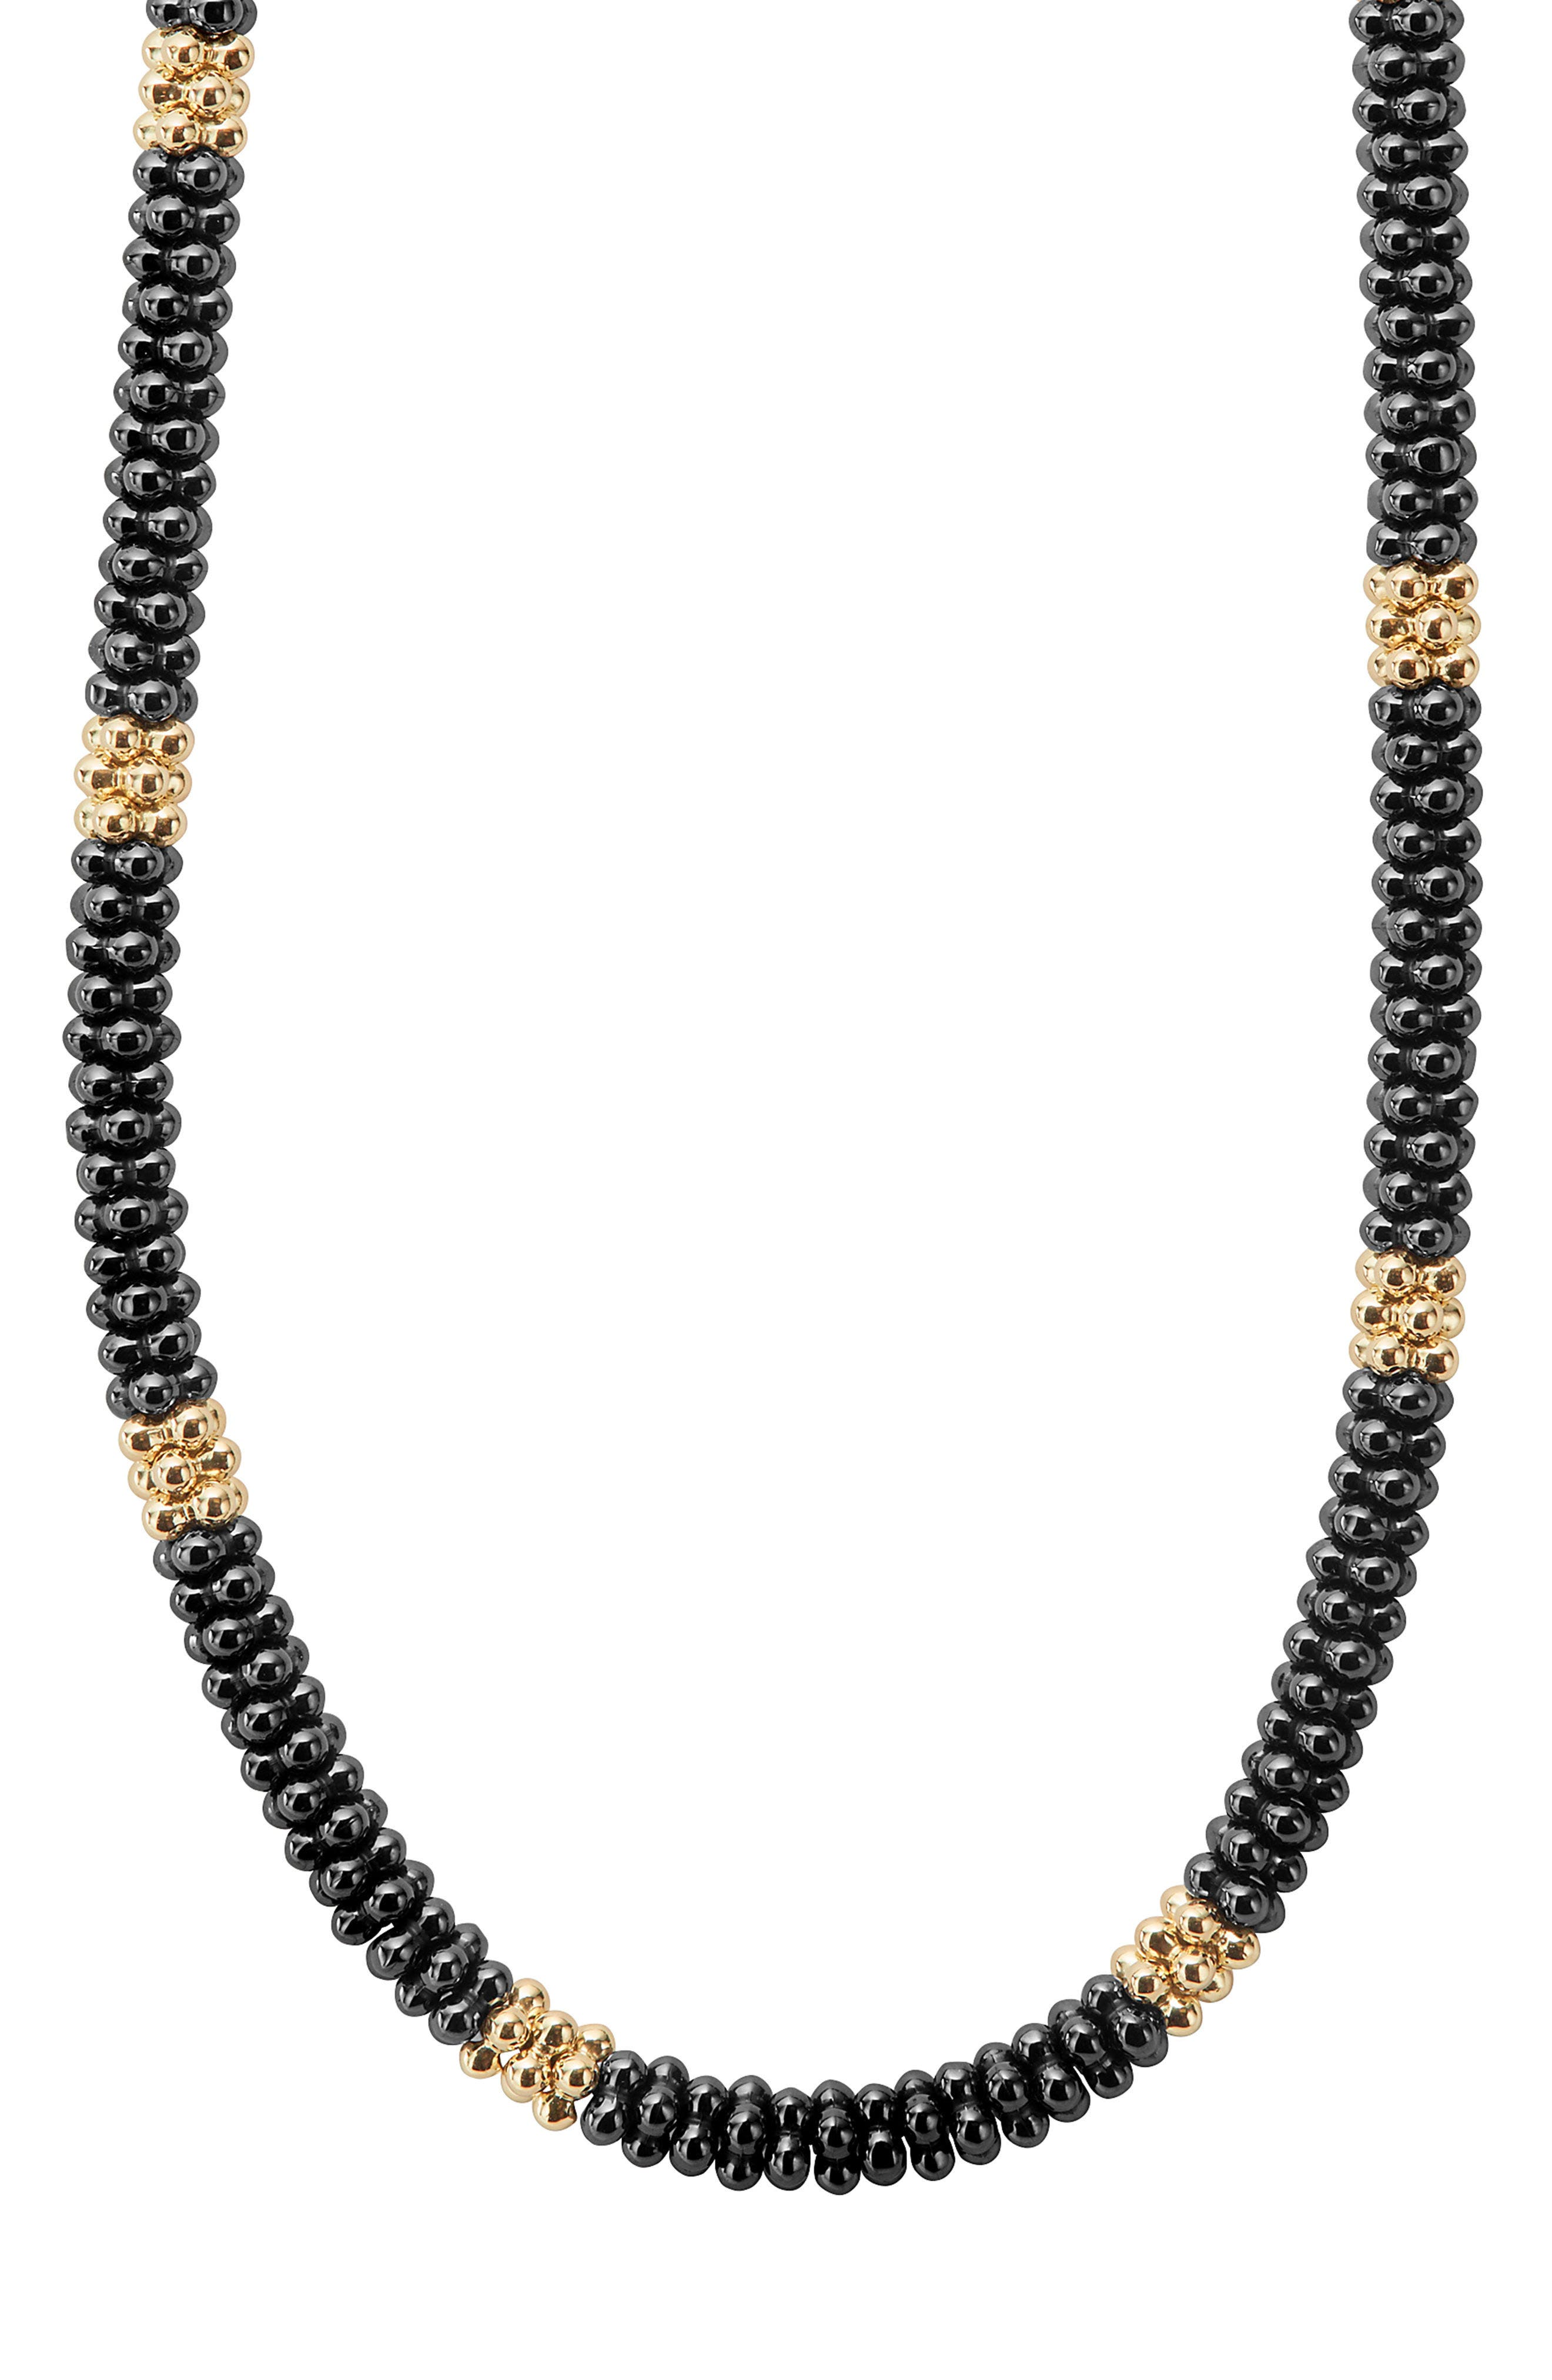 Gold & Black Caviar Rope Necklace,                             Alternate thumbnail 2, color,                             GOLD